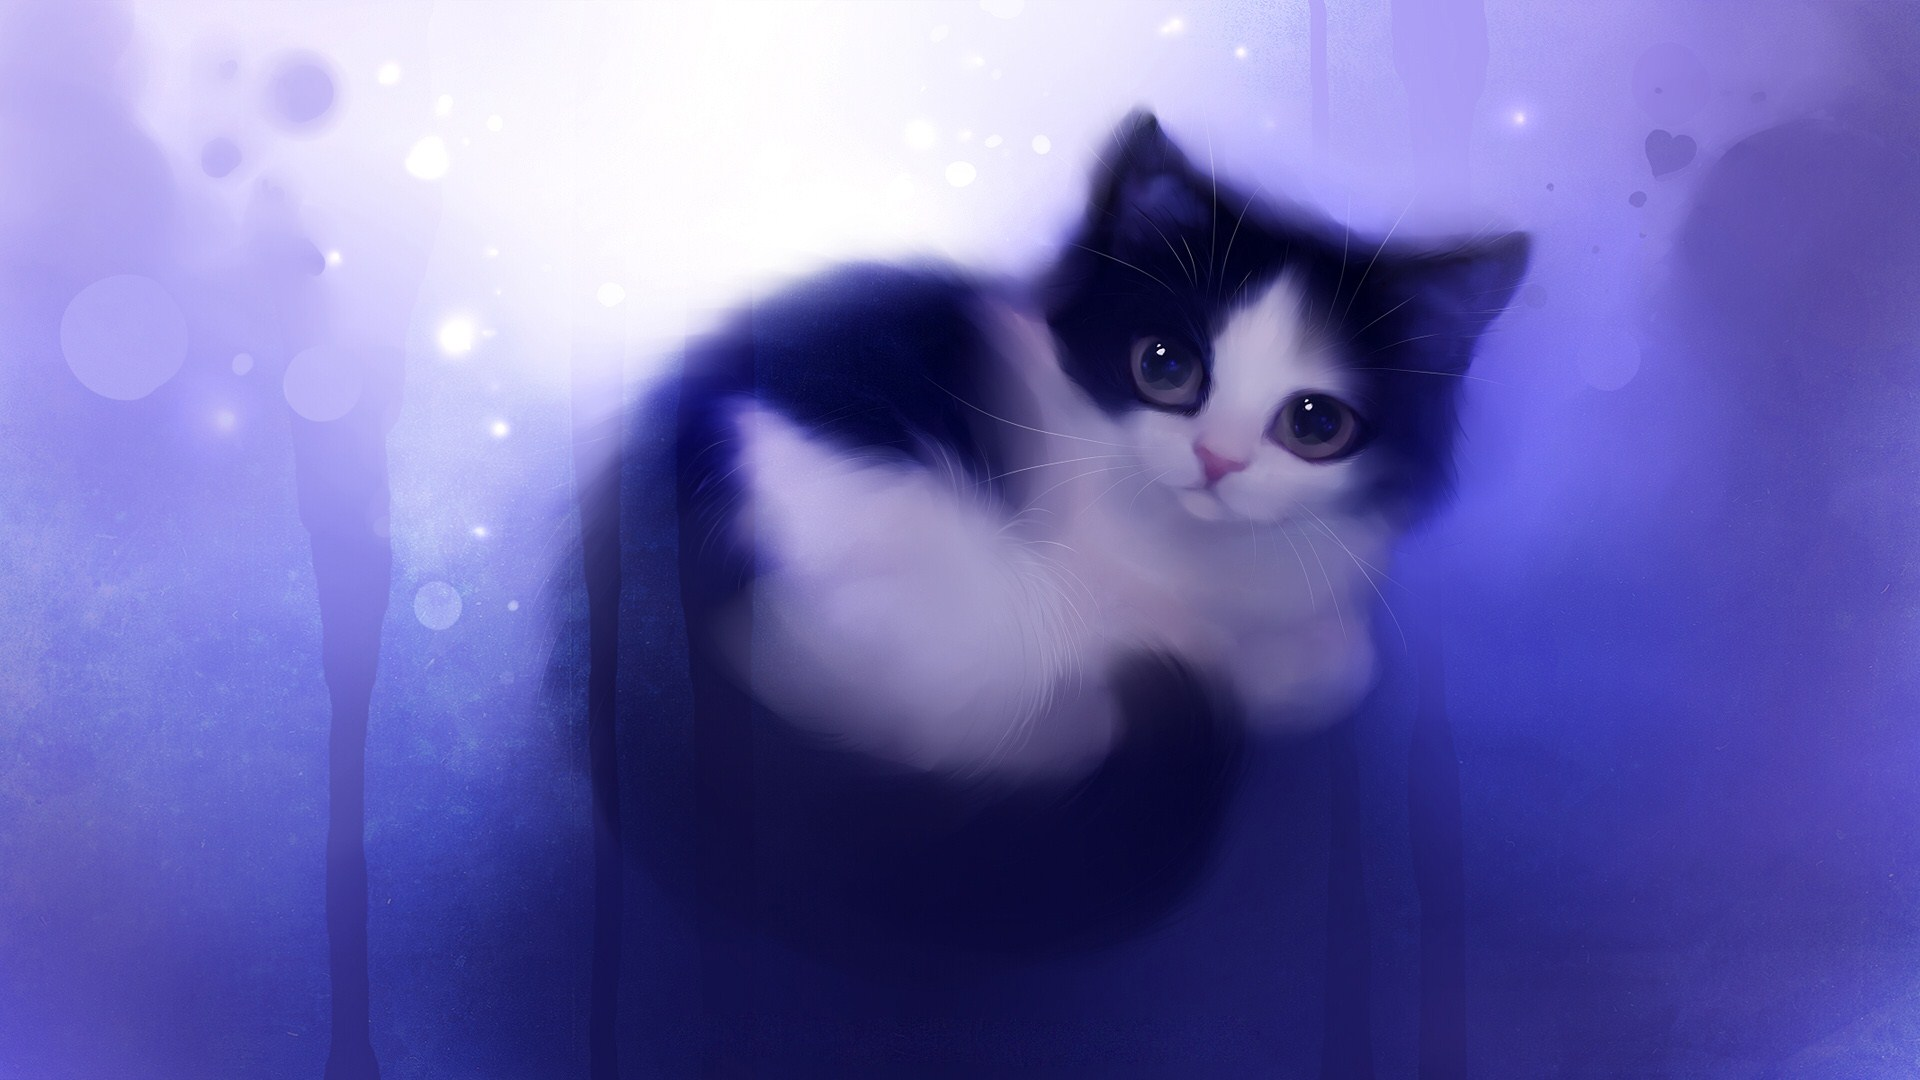 adorable cat wallpaper cute wallpaper share this cute wallpaper on 1920x1080